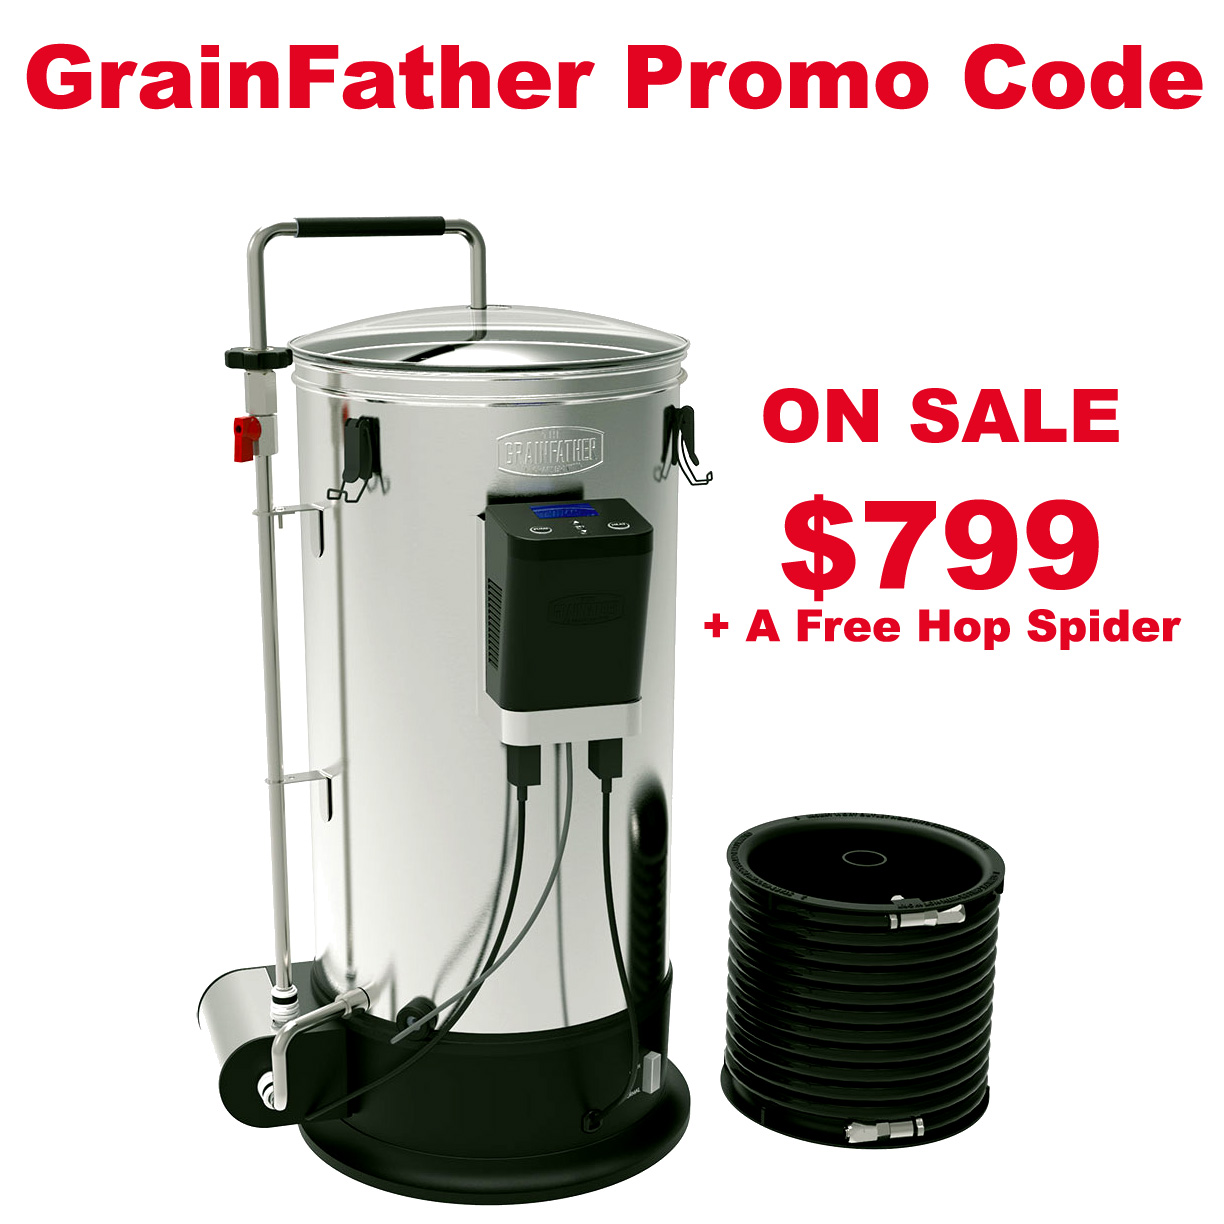 Home Brewer Promo Code for Get a New GrainFather Connect for Just $799 + A Free Hop Spider Coupon Code